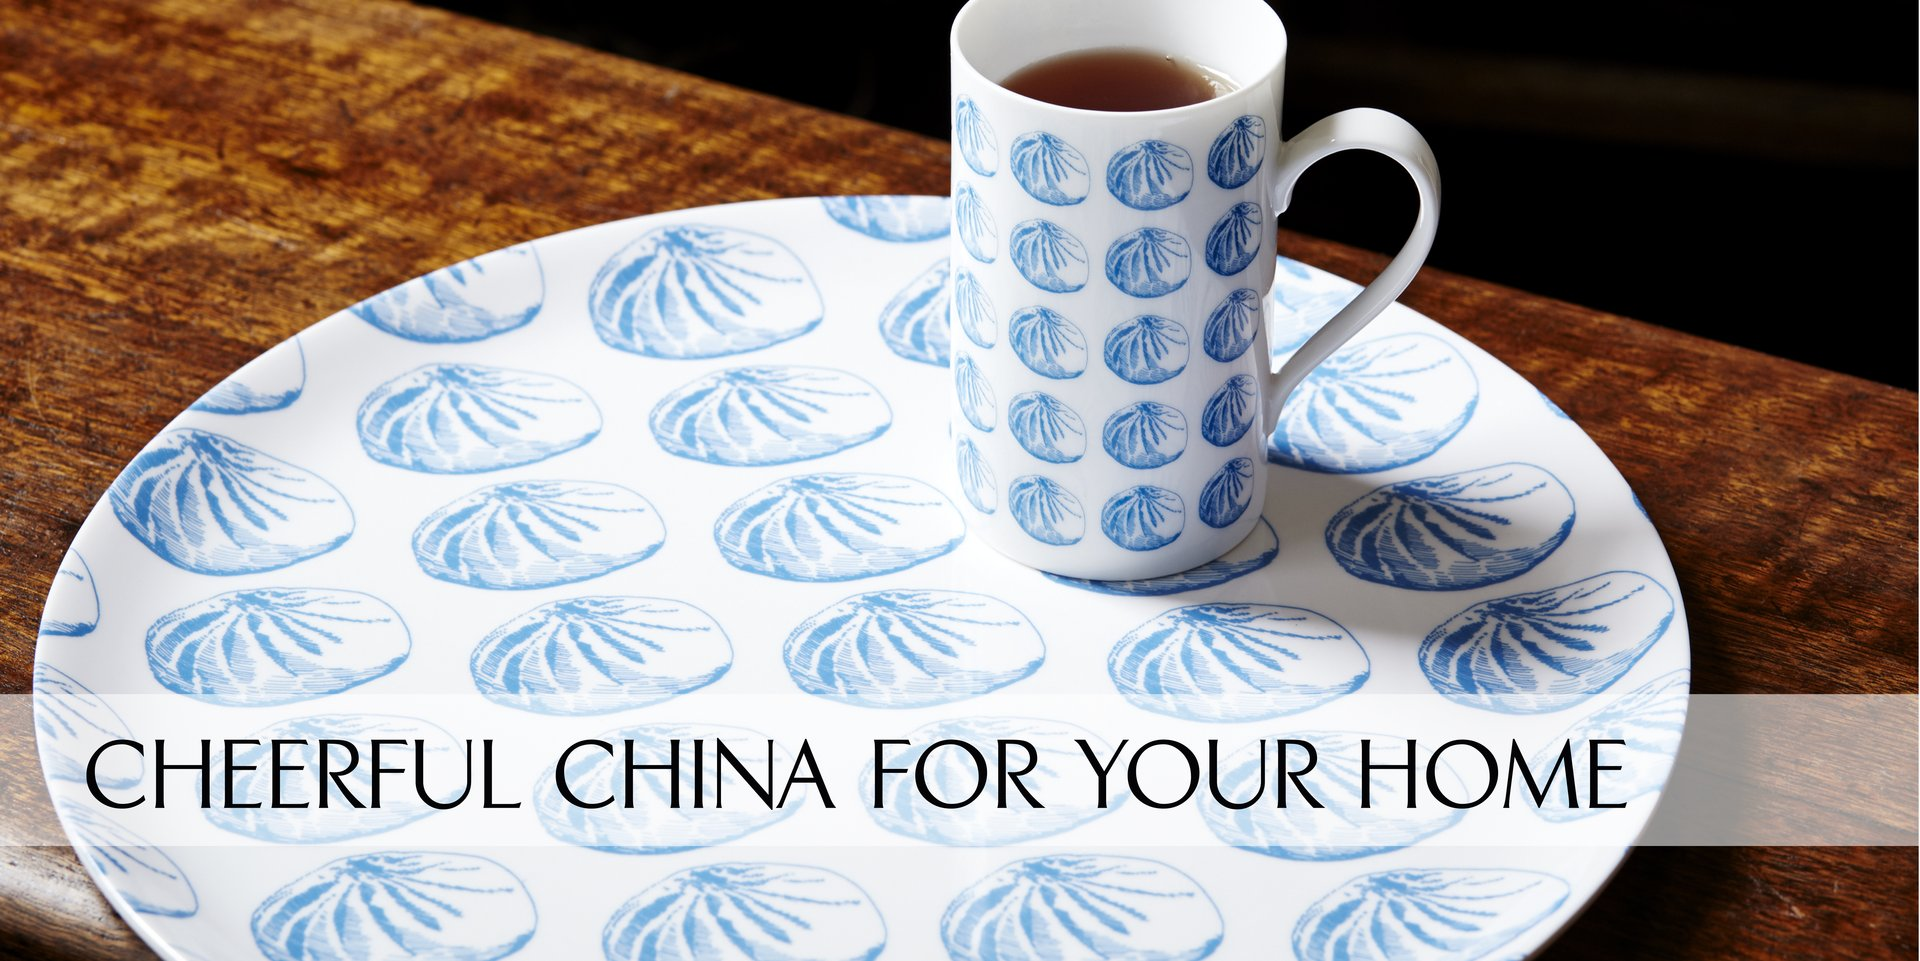 pinyin-press-baozi-blue-plate-mug